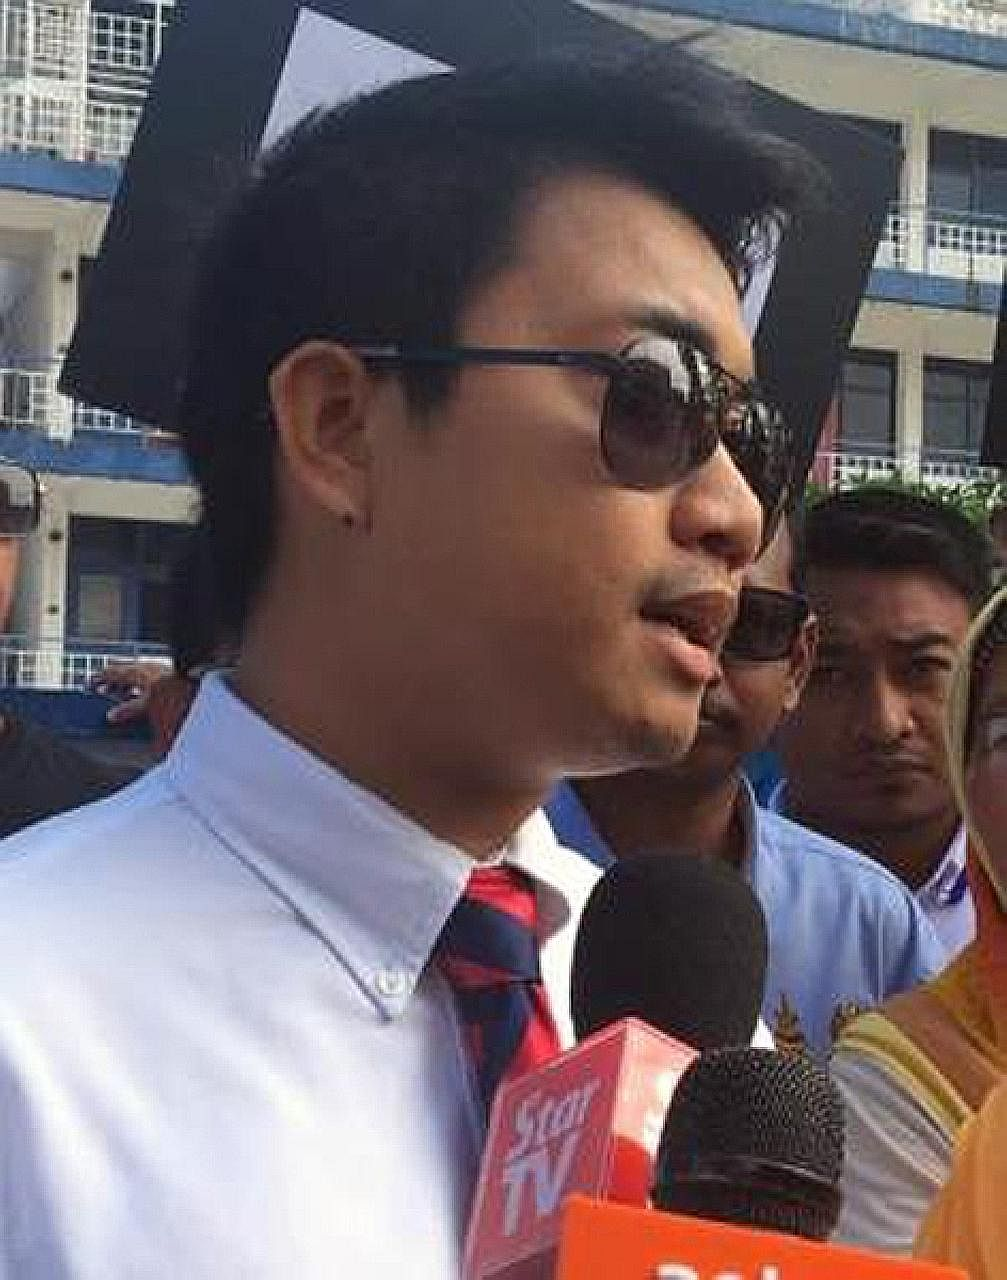 Malaysian PKR Youth chief Adam Rosly (above) owns a bungalow, worth S$2.26 million according to his detractors. The house (right), with its three conical roofs, stands out among the humbler structures in the Malay urban kampung enclave of Ampang.